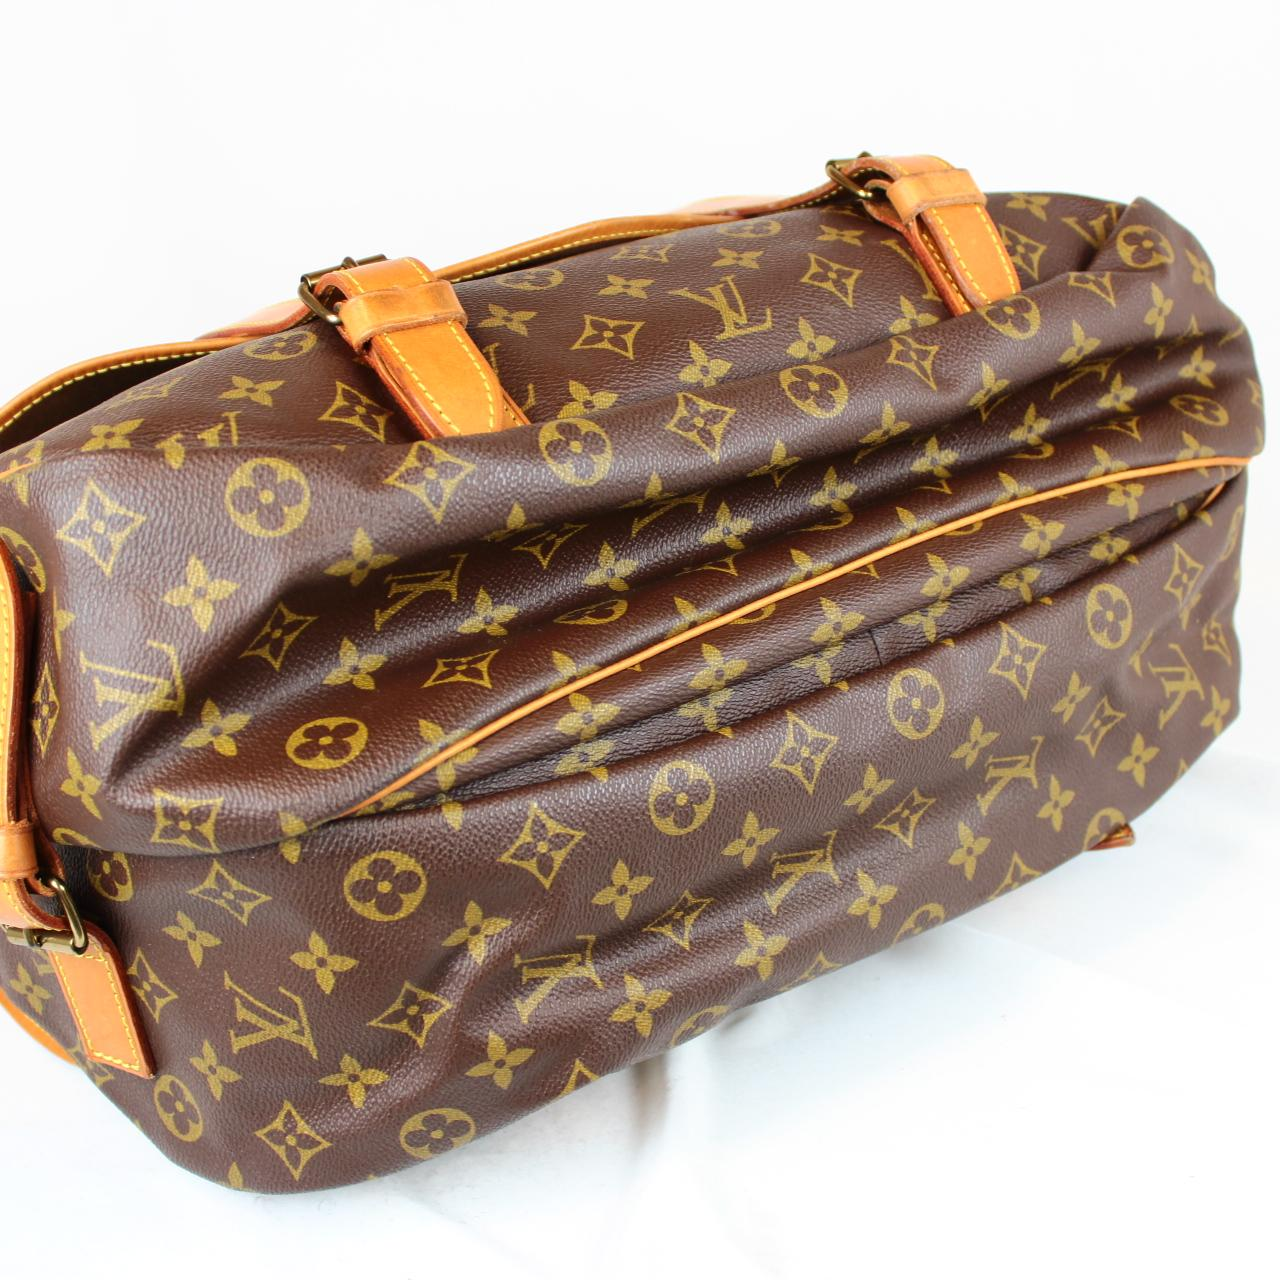 Image Result For Crossbody Louis Vuitton Bag